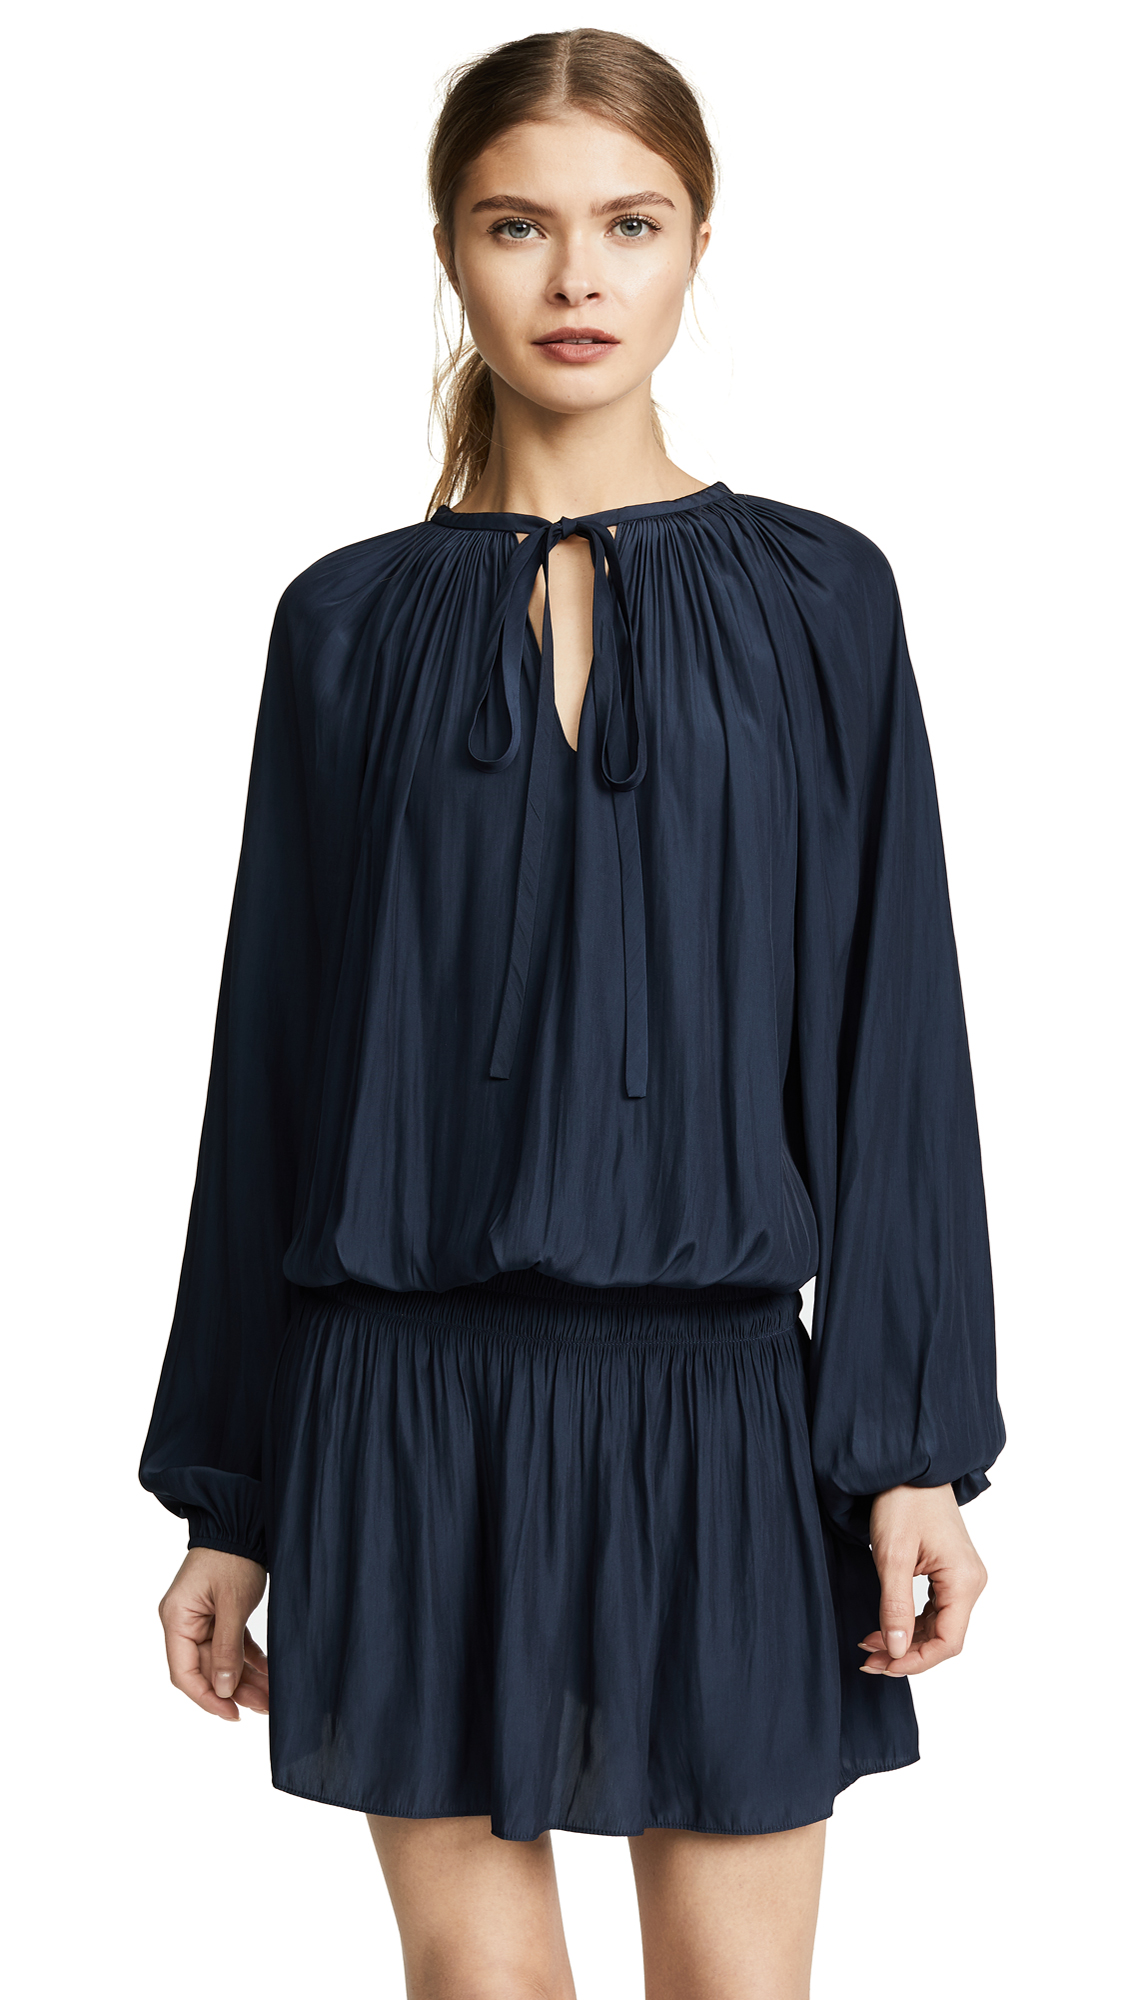 Ramy Brook Paris Dress - 30% Off Sale